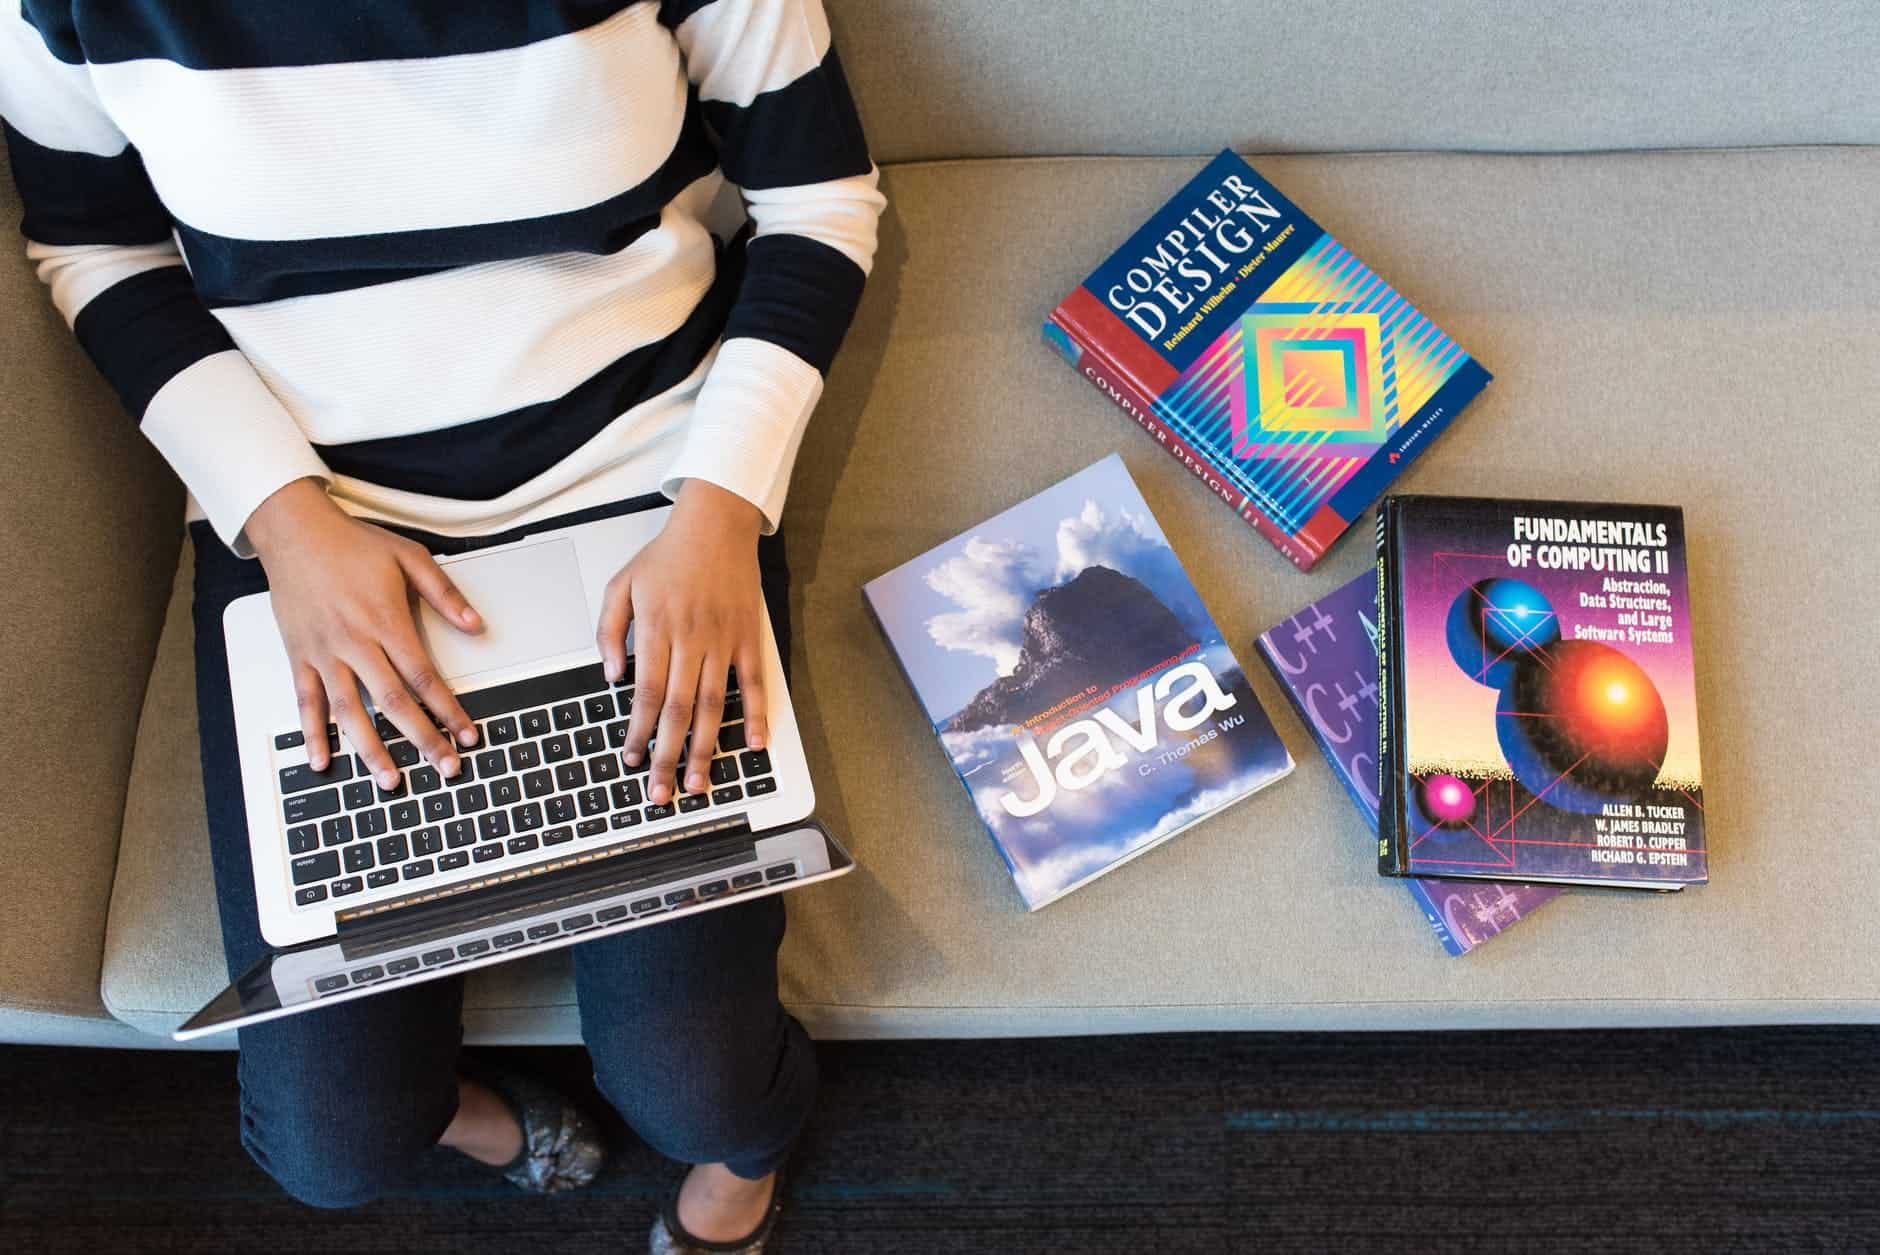 A person types on a keyboard next to coding textbooks